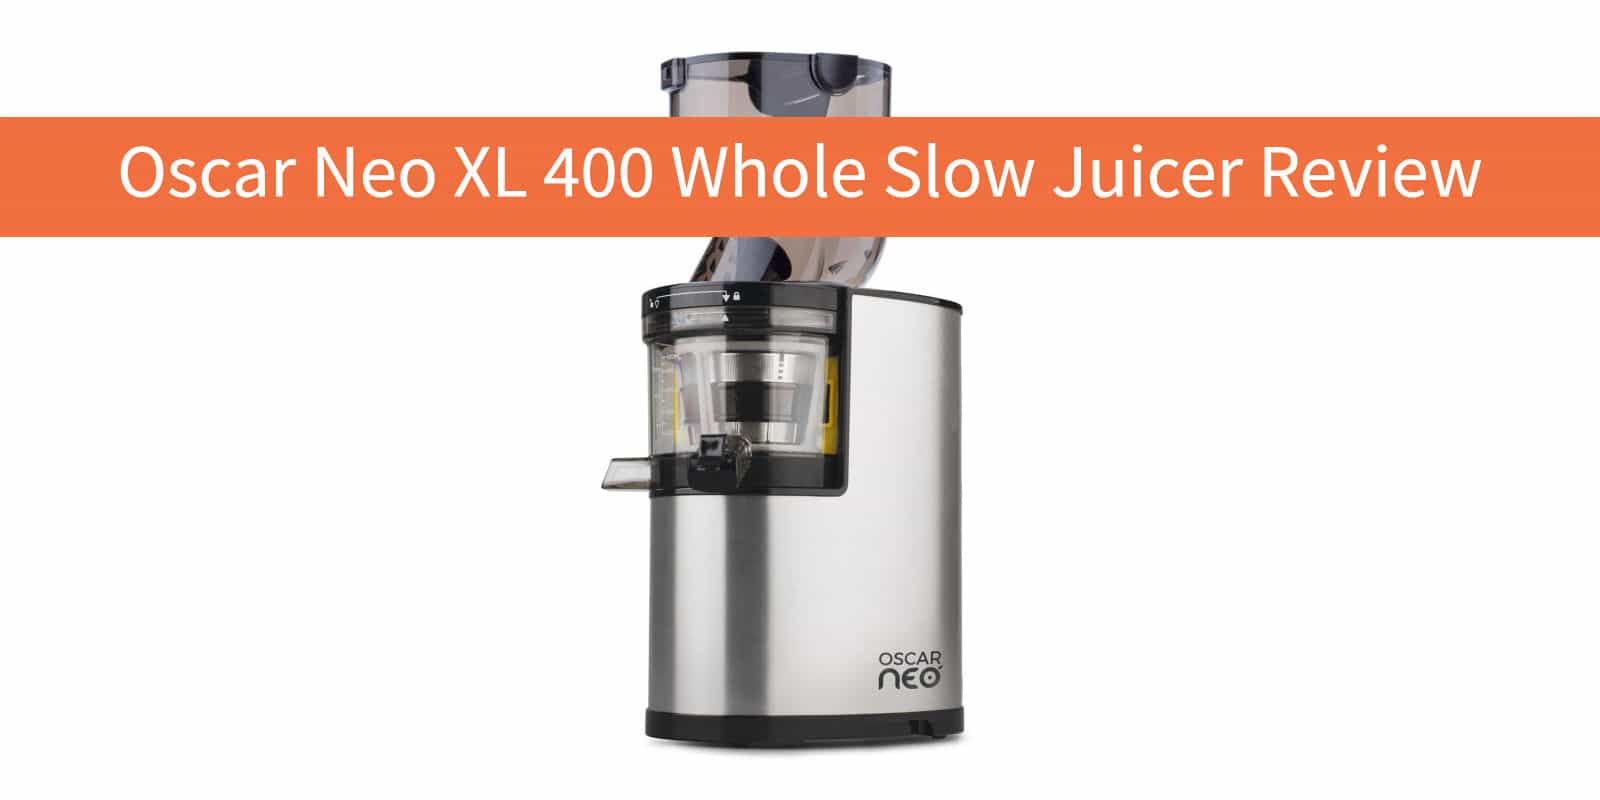 Oscar Neo Xl Whole Slow Juicer Opiniones : Oscar Neo XL 400 Whole Slow Juicer Review vegByte